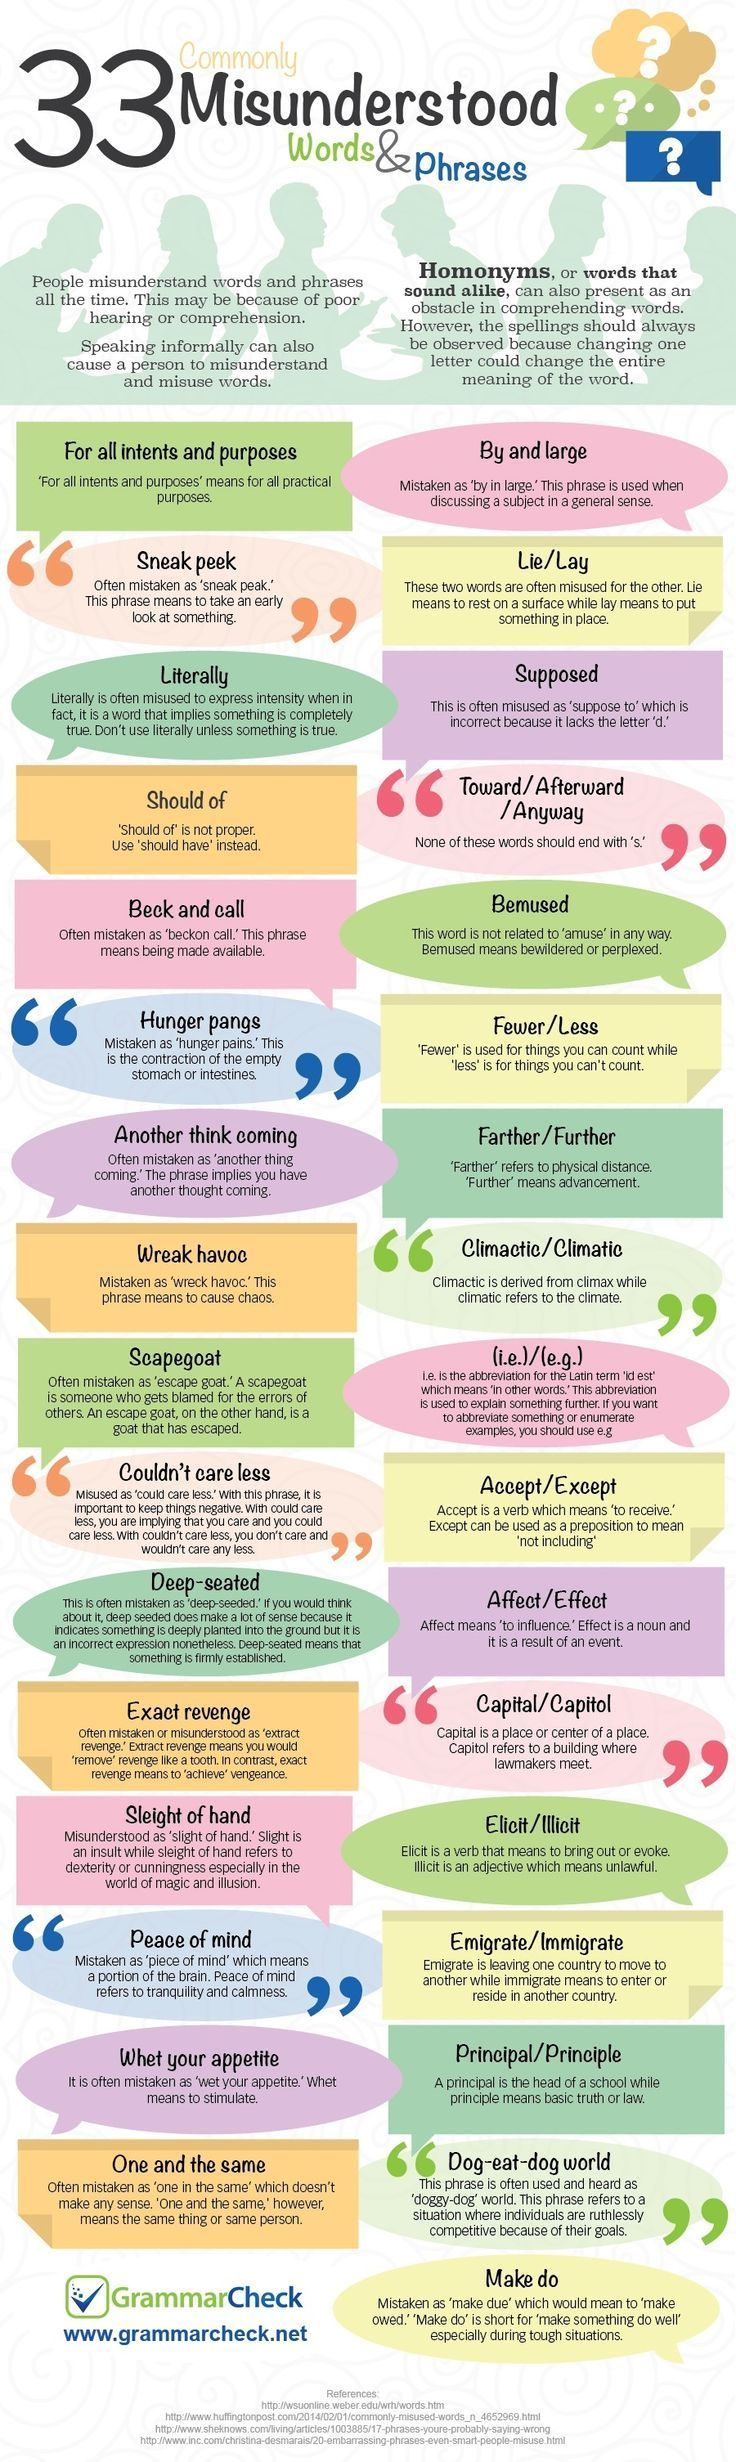 This infographic is courtesy of Jennifer Frost of GrammarCheck. Visit them online at http://grammarcheck.net or check out the free online grammar checker at gramm